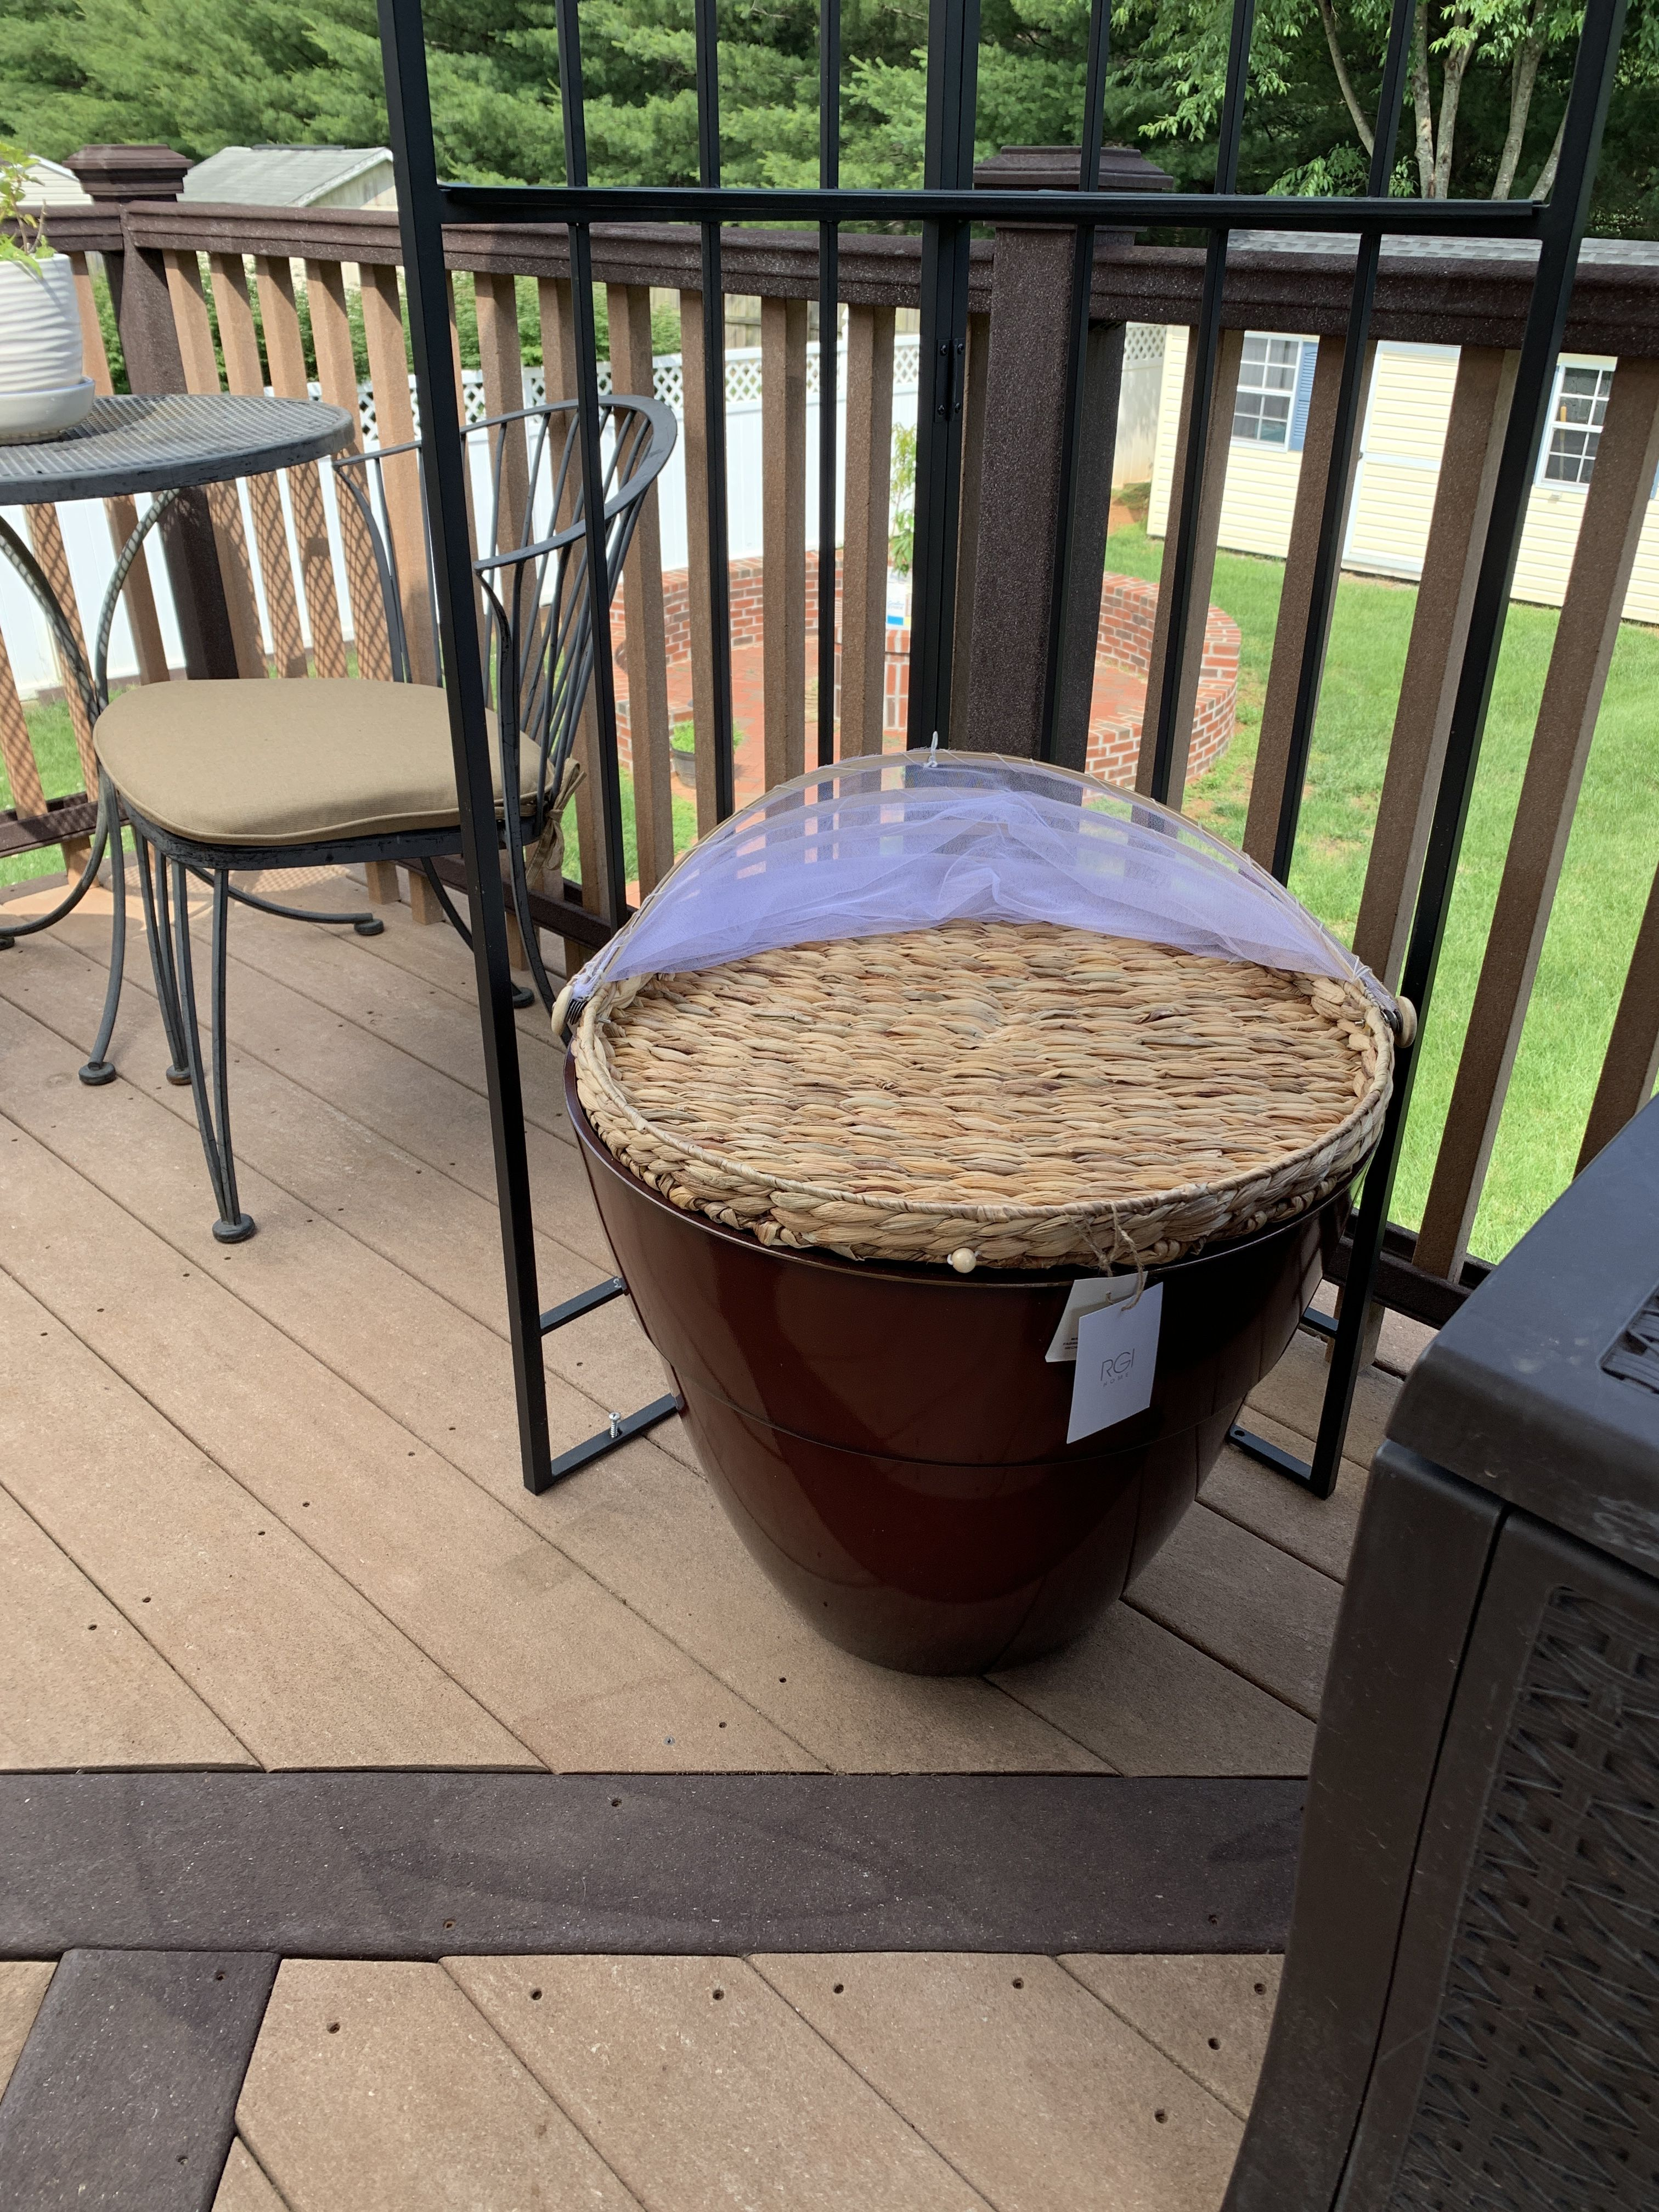 Planter From Costco Tray From Homegoods Outdoor Decor 400 x 300